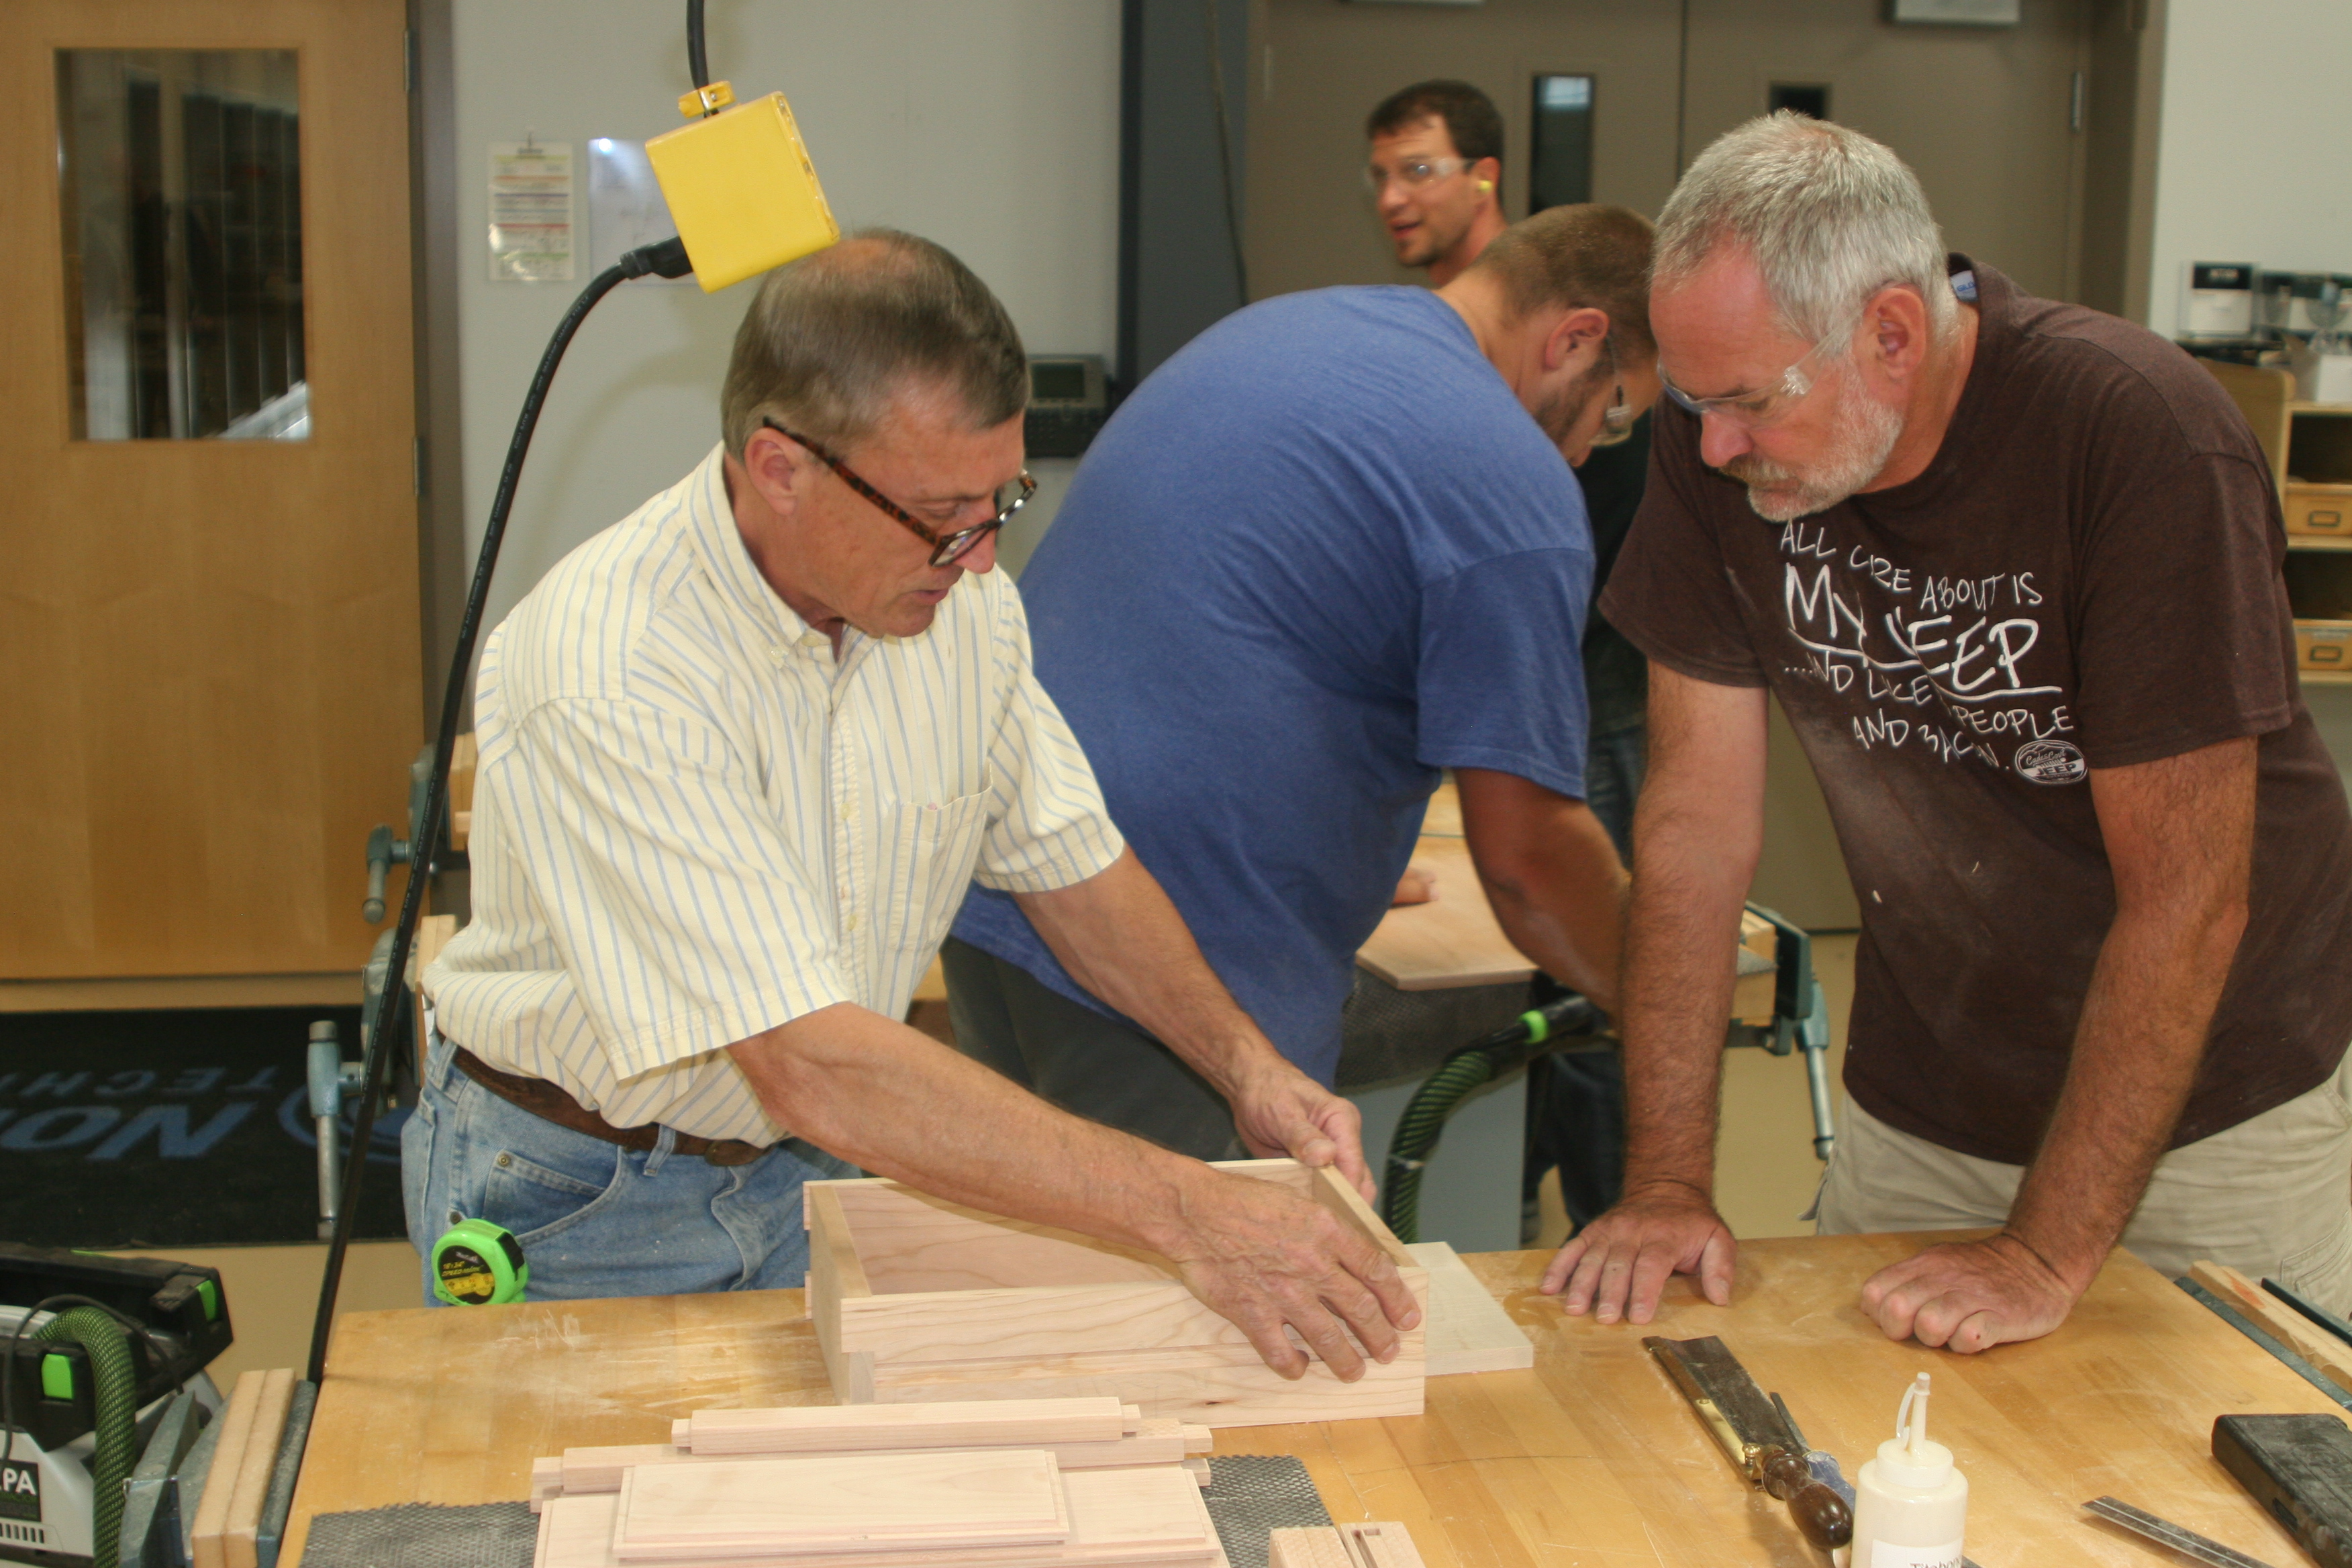 Master Furniture Maker Shares His Skills With The Next Generation Wxpr